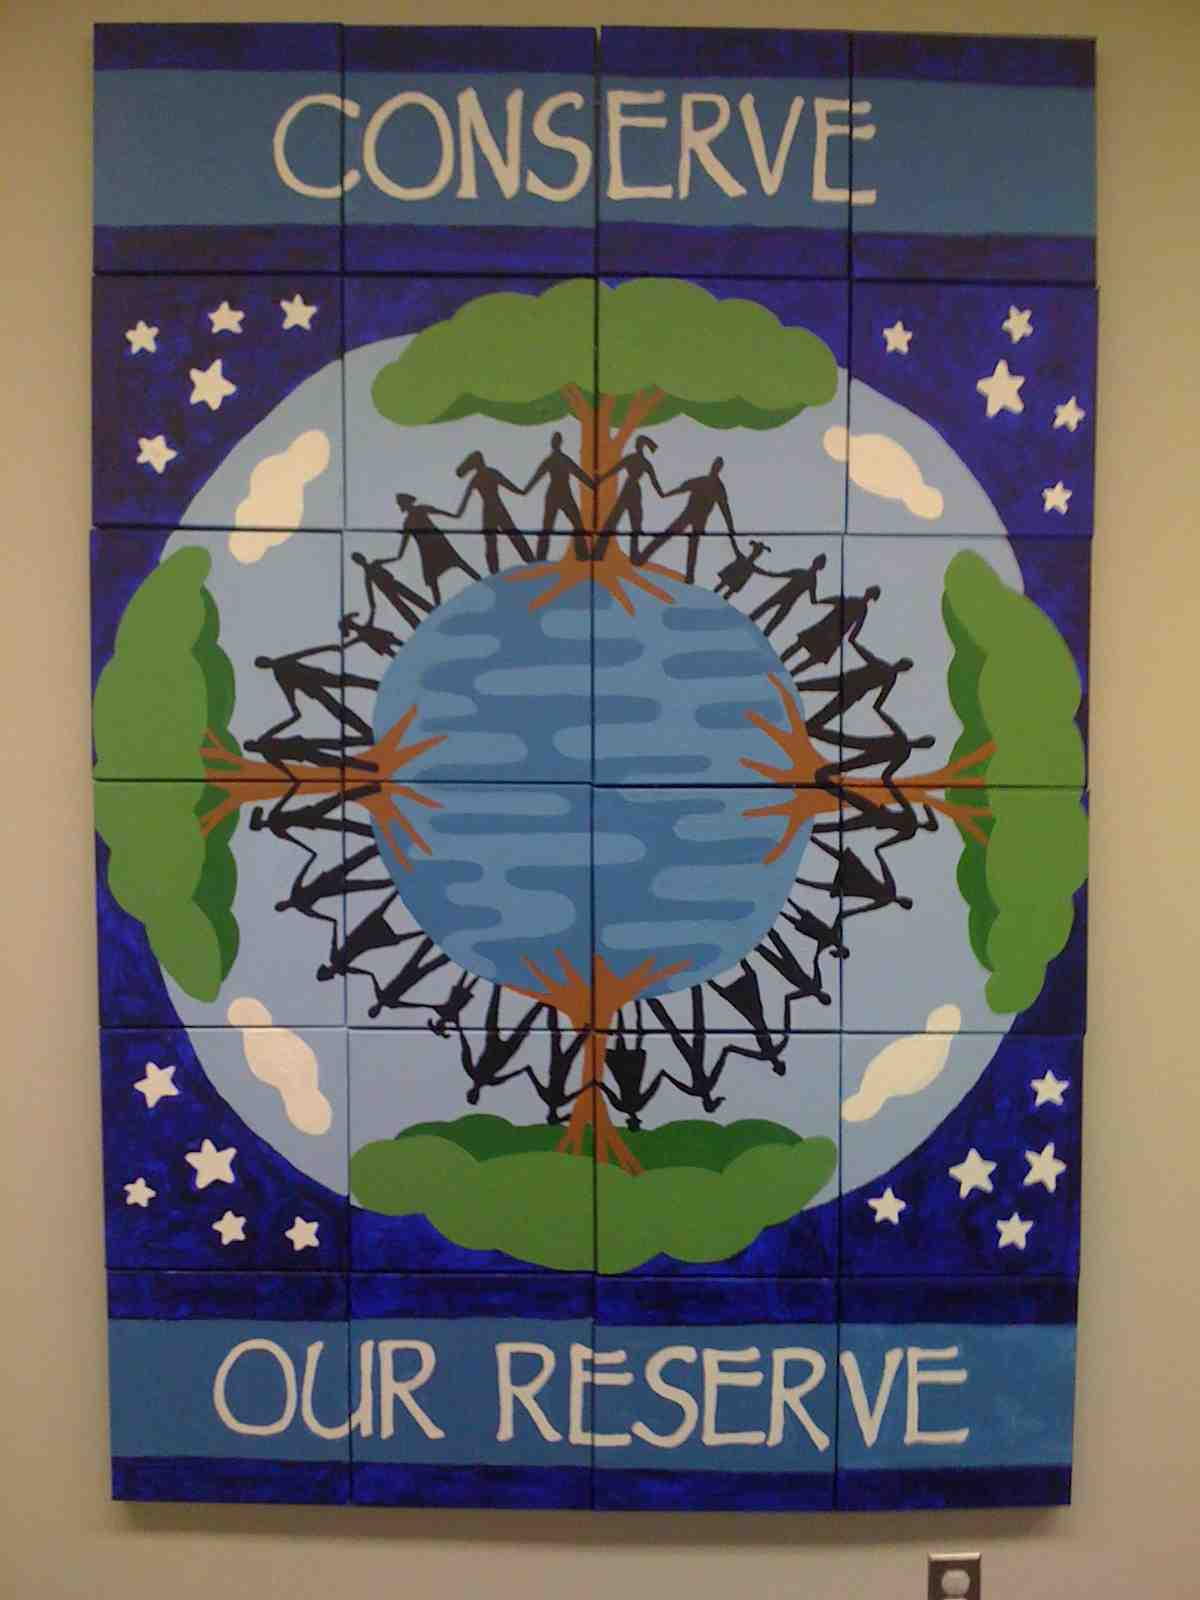 Conserve Our Reserve